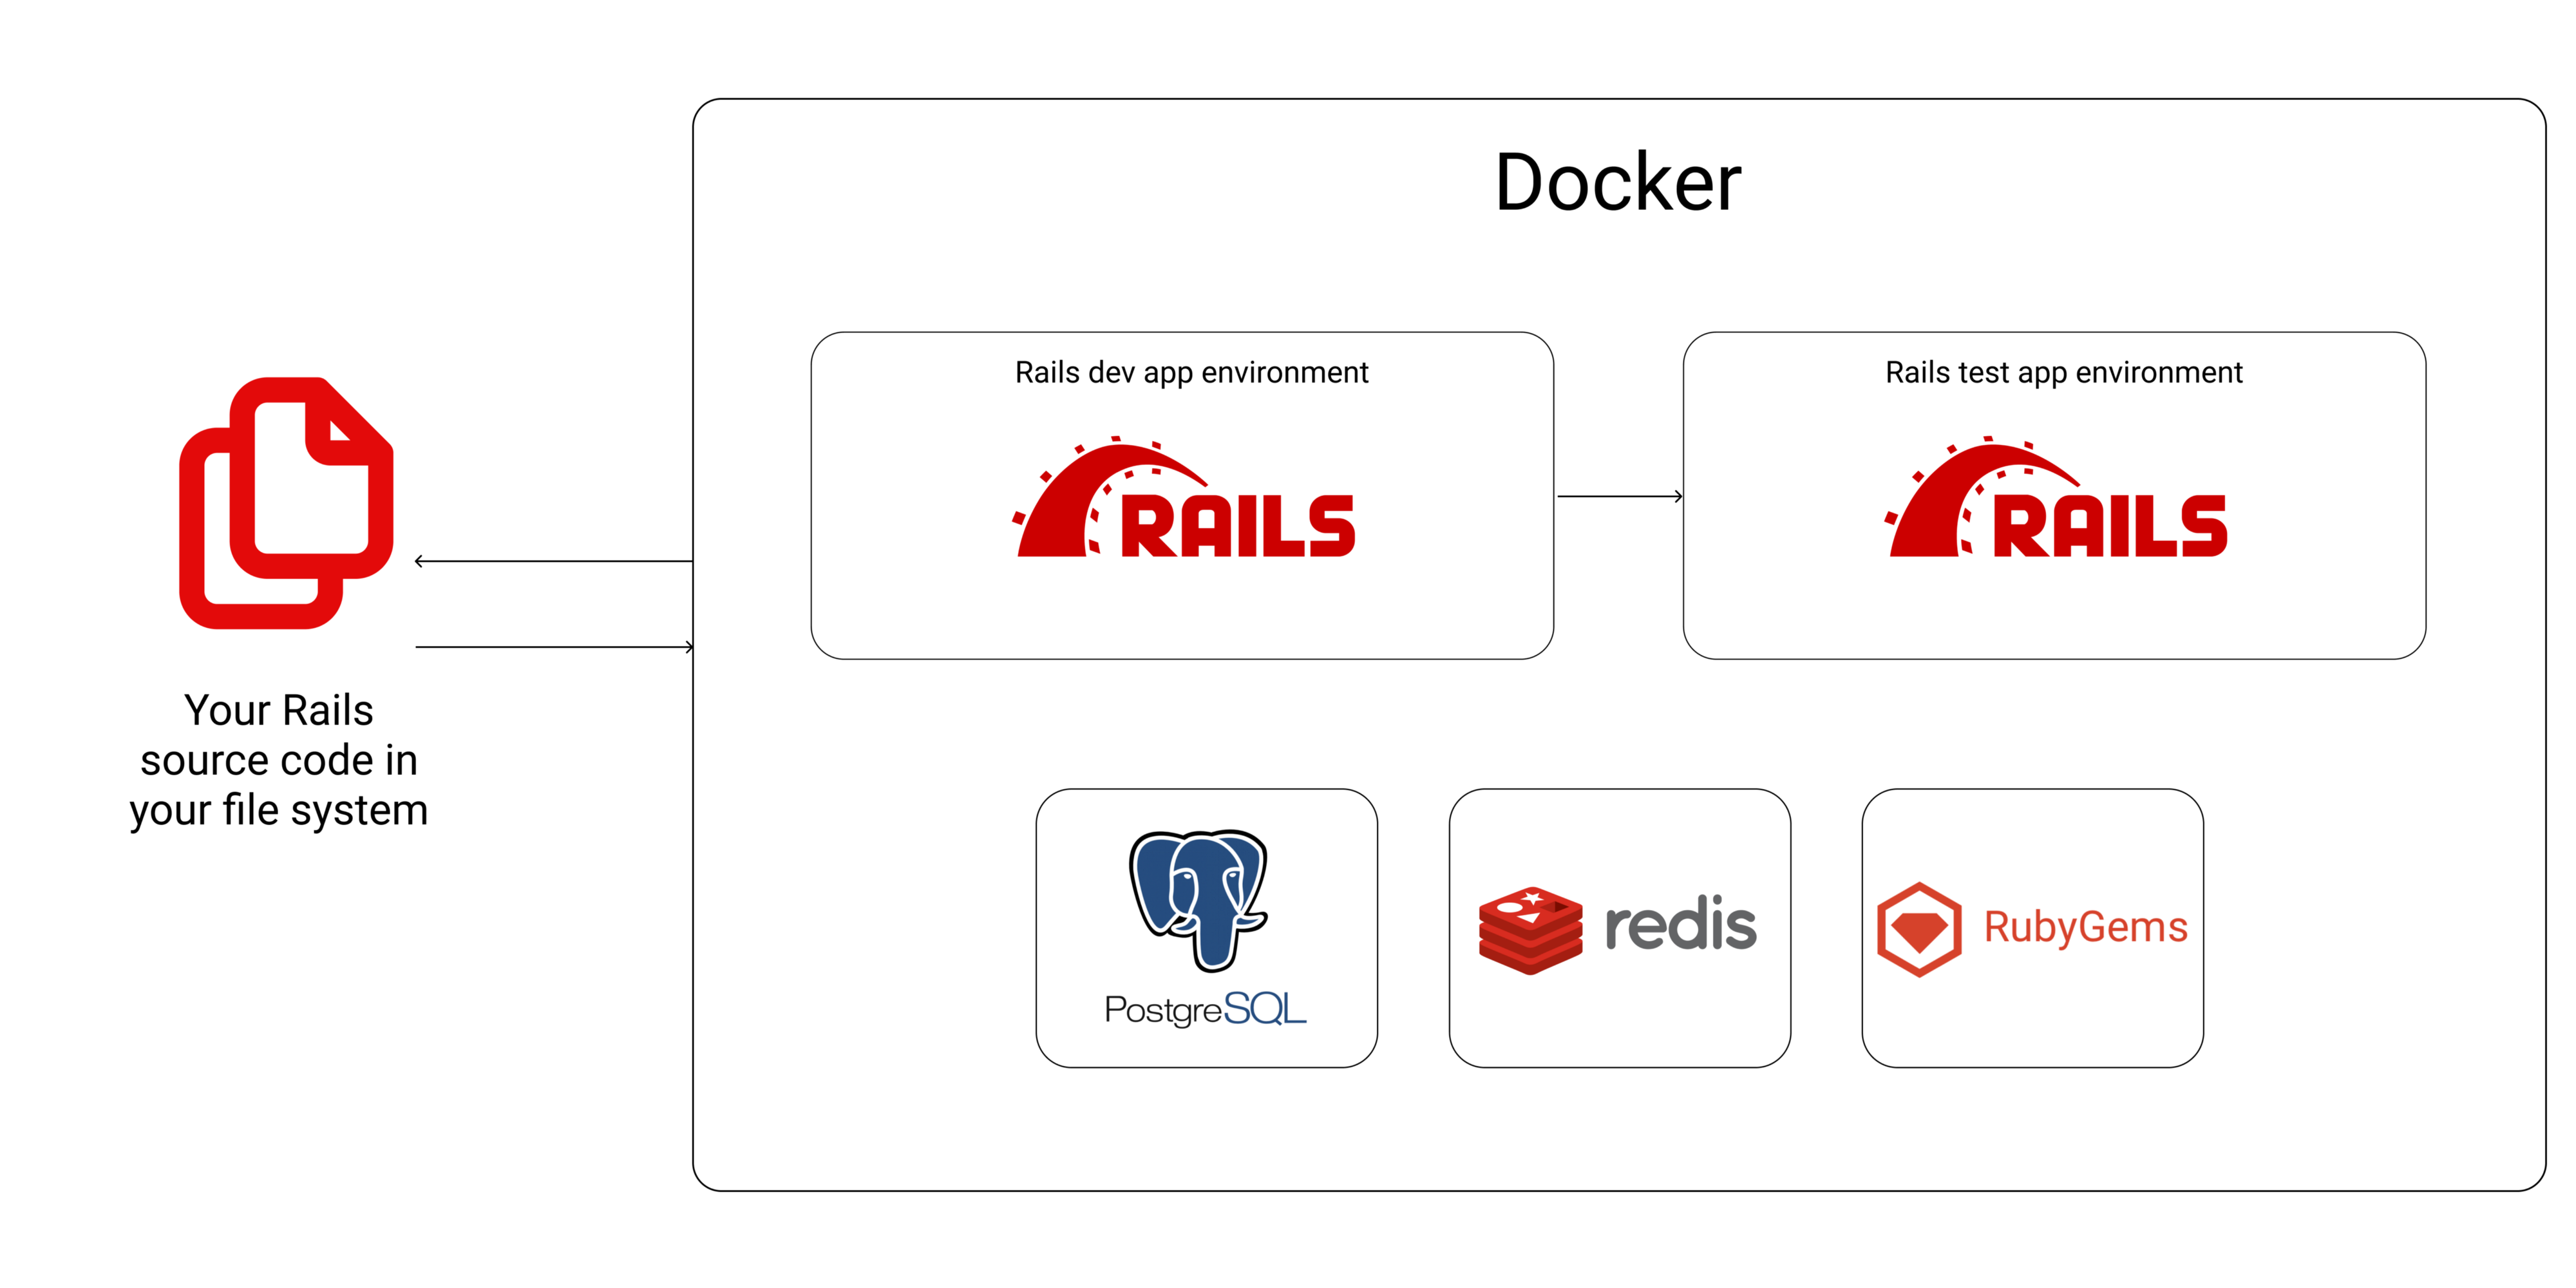 a diagram showing the relationship between your Rails source code and the other software mentioned in the article